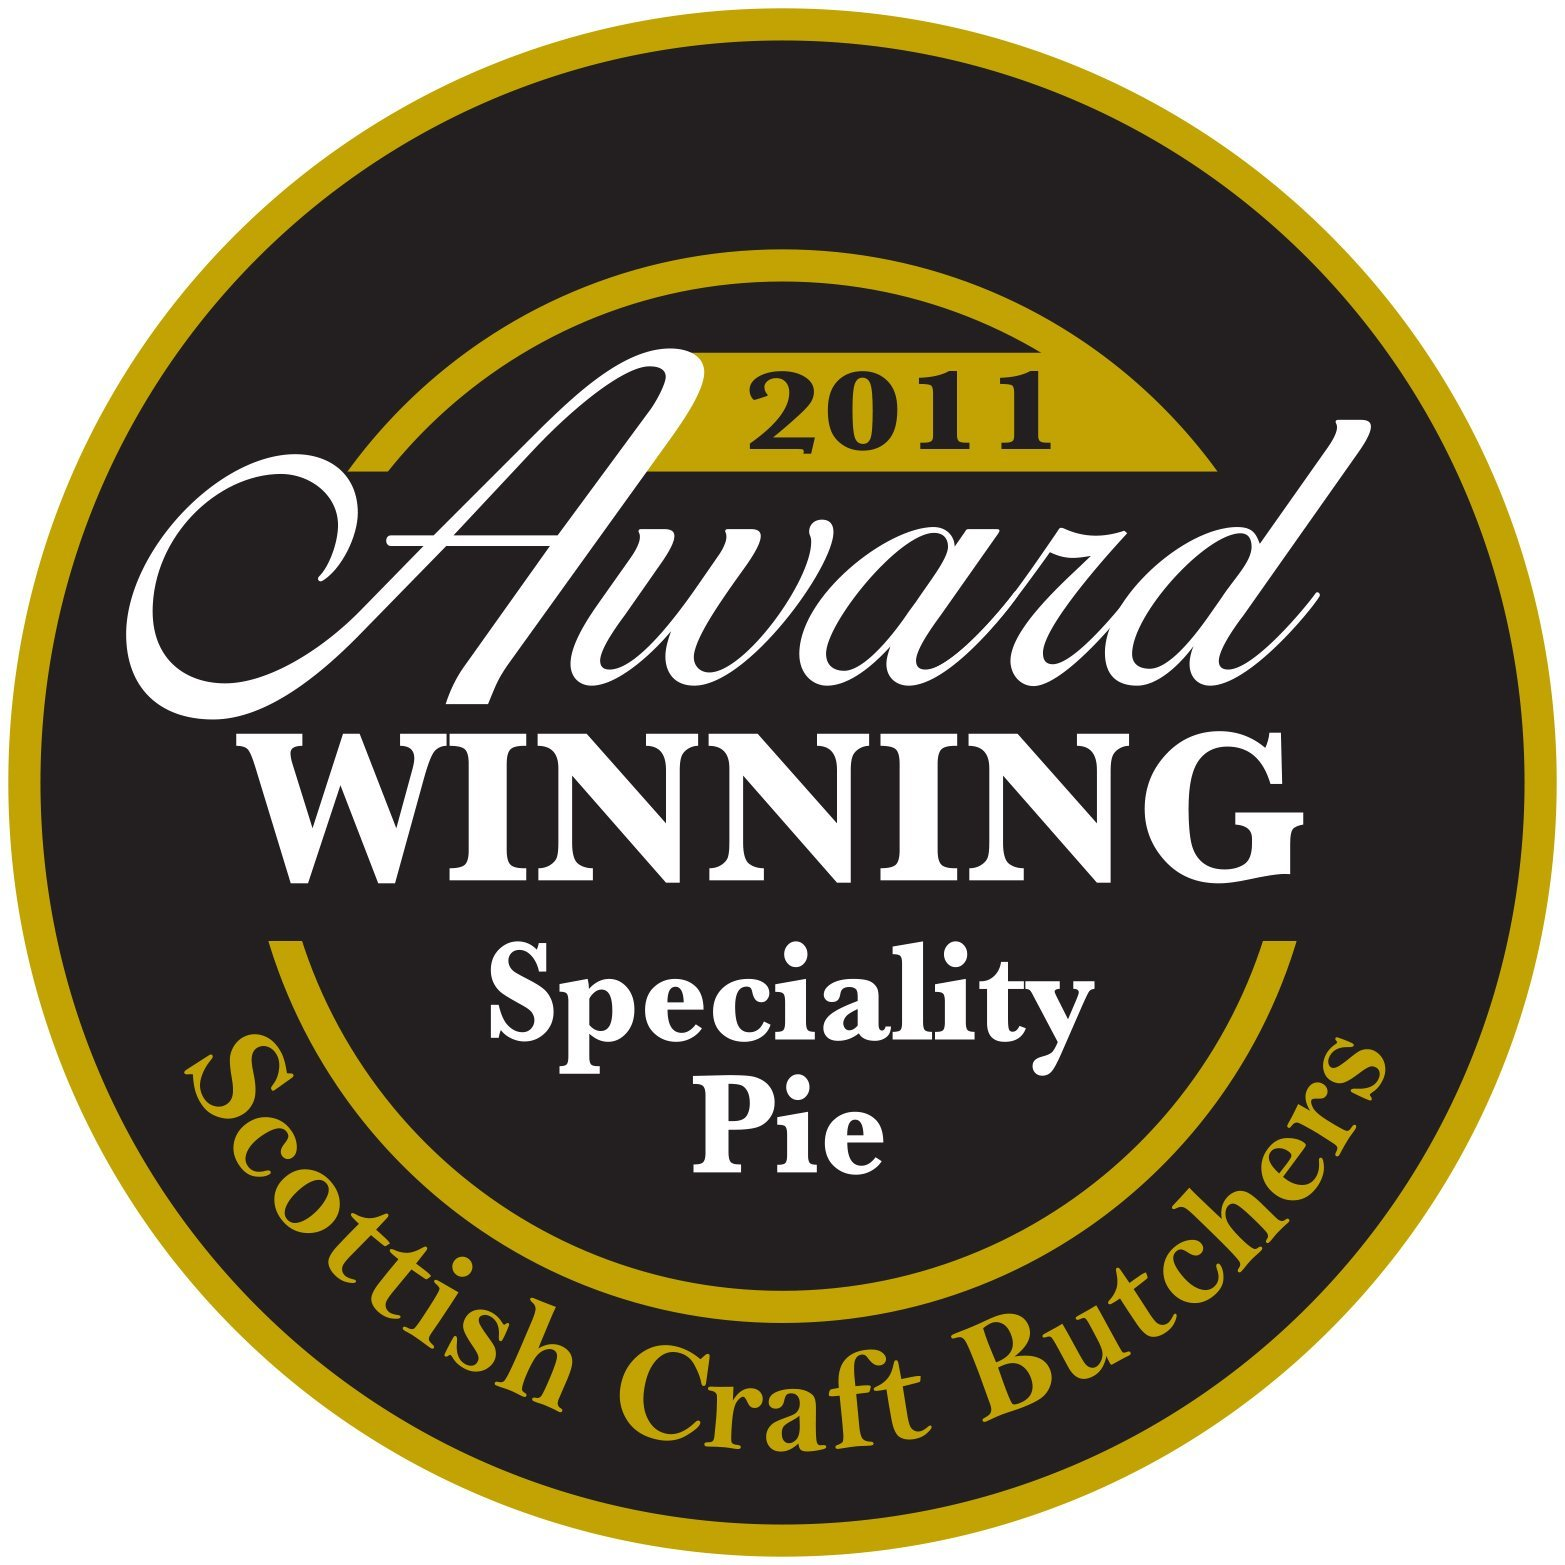 2011 award for speciality pie